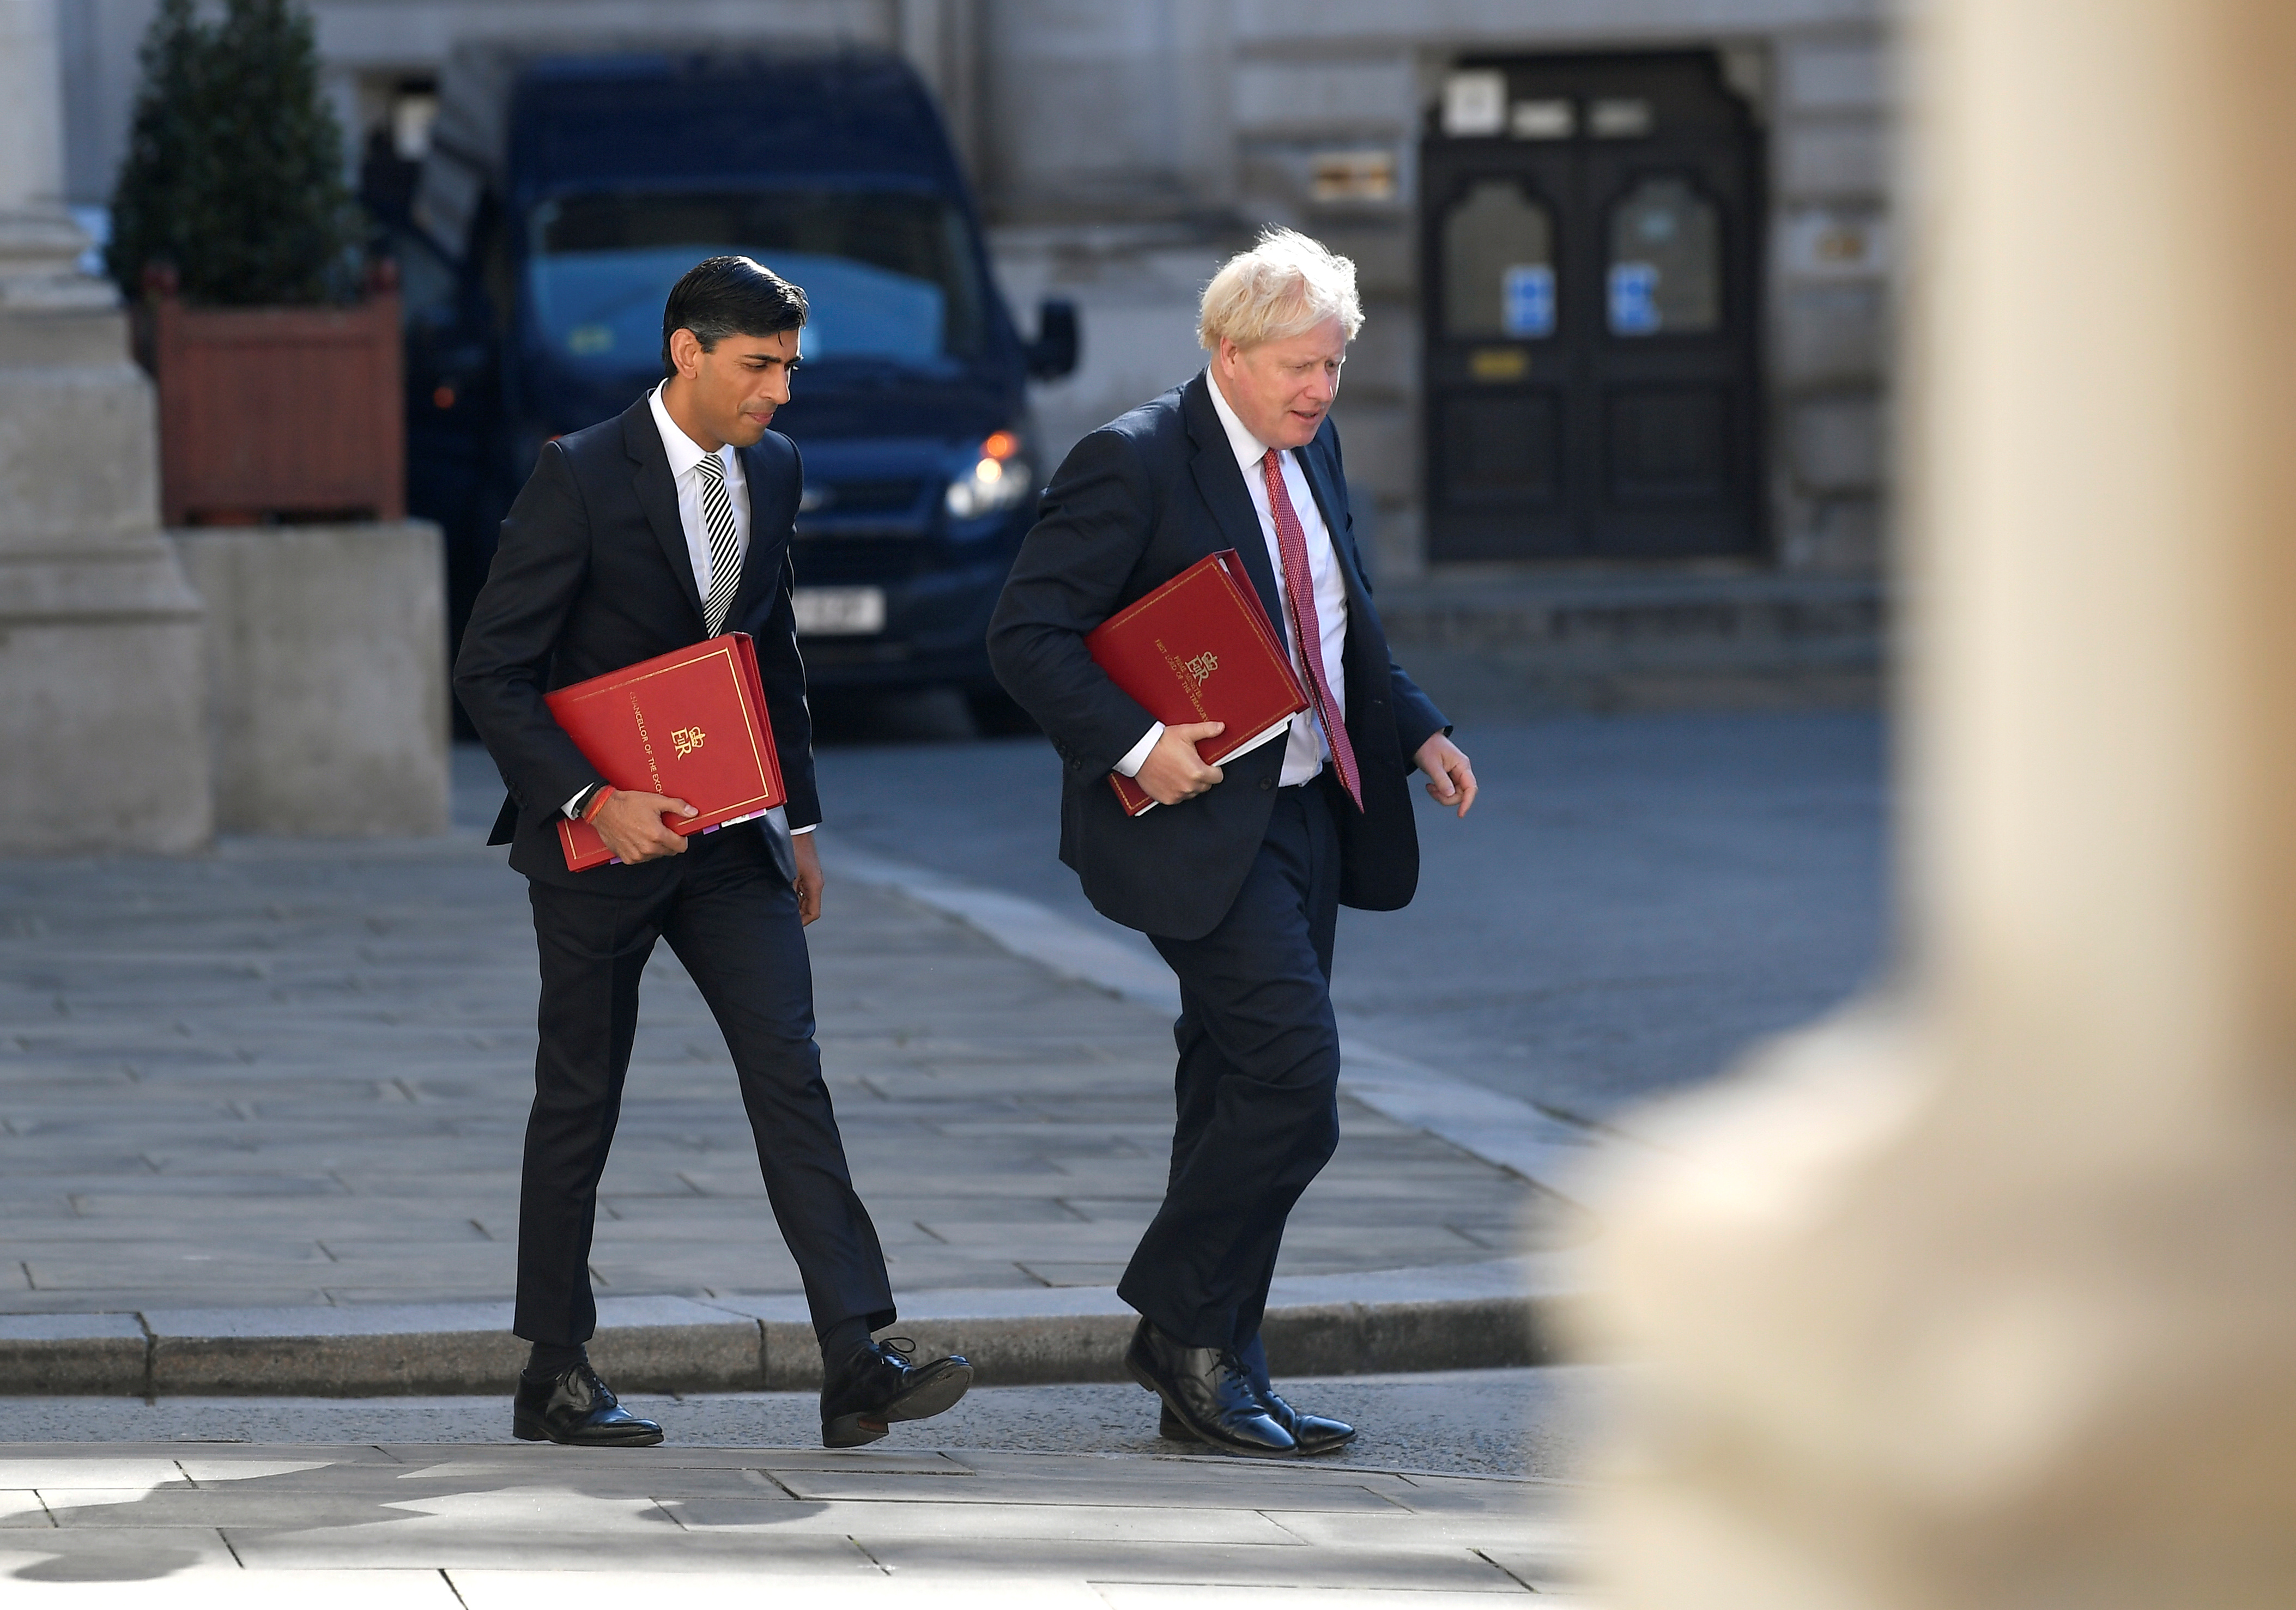 Britain's Chancellor of the Exchequer Rishi Sunak and Britain's Prime Minister Boris Johnson arrive to attend a Cabinet meeting of senior government ministers at the Foreign and Commonwealth Office (FCO) in London, Britain, September 1, 2020. REUTERS/Toby Melville/Pool